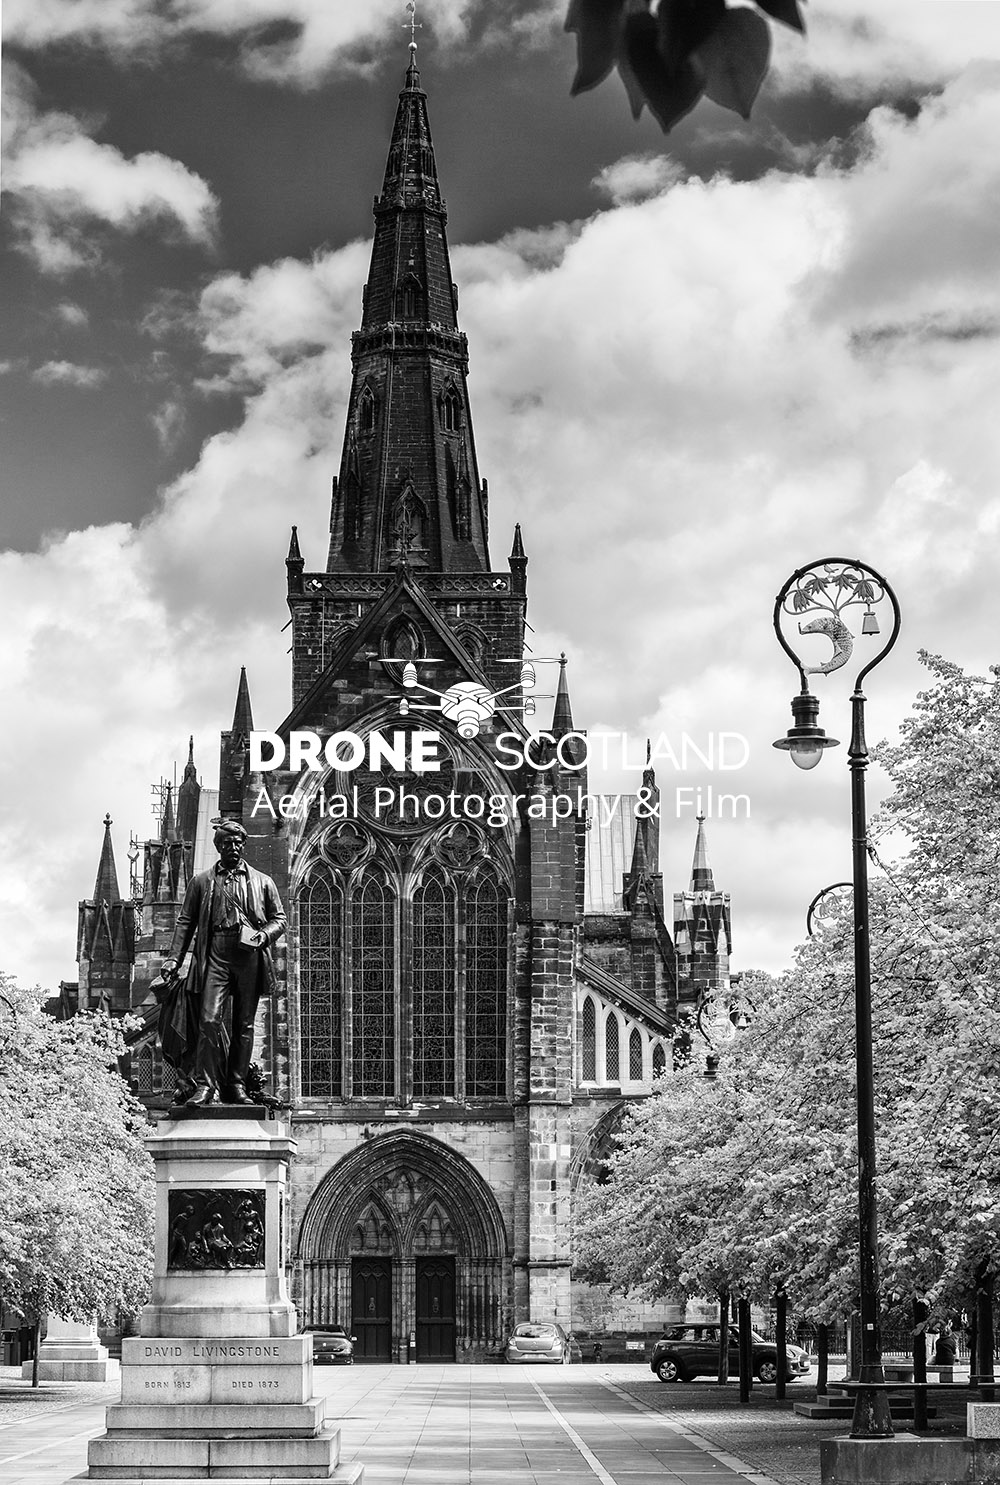 Glasgow Cathedral Image from a Drone 1